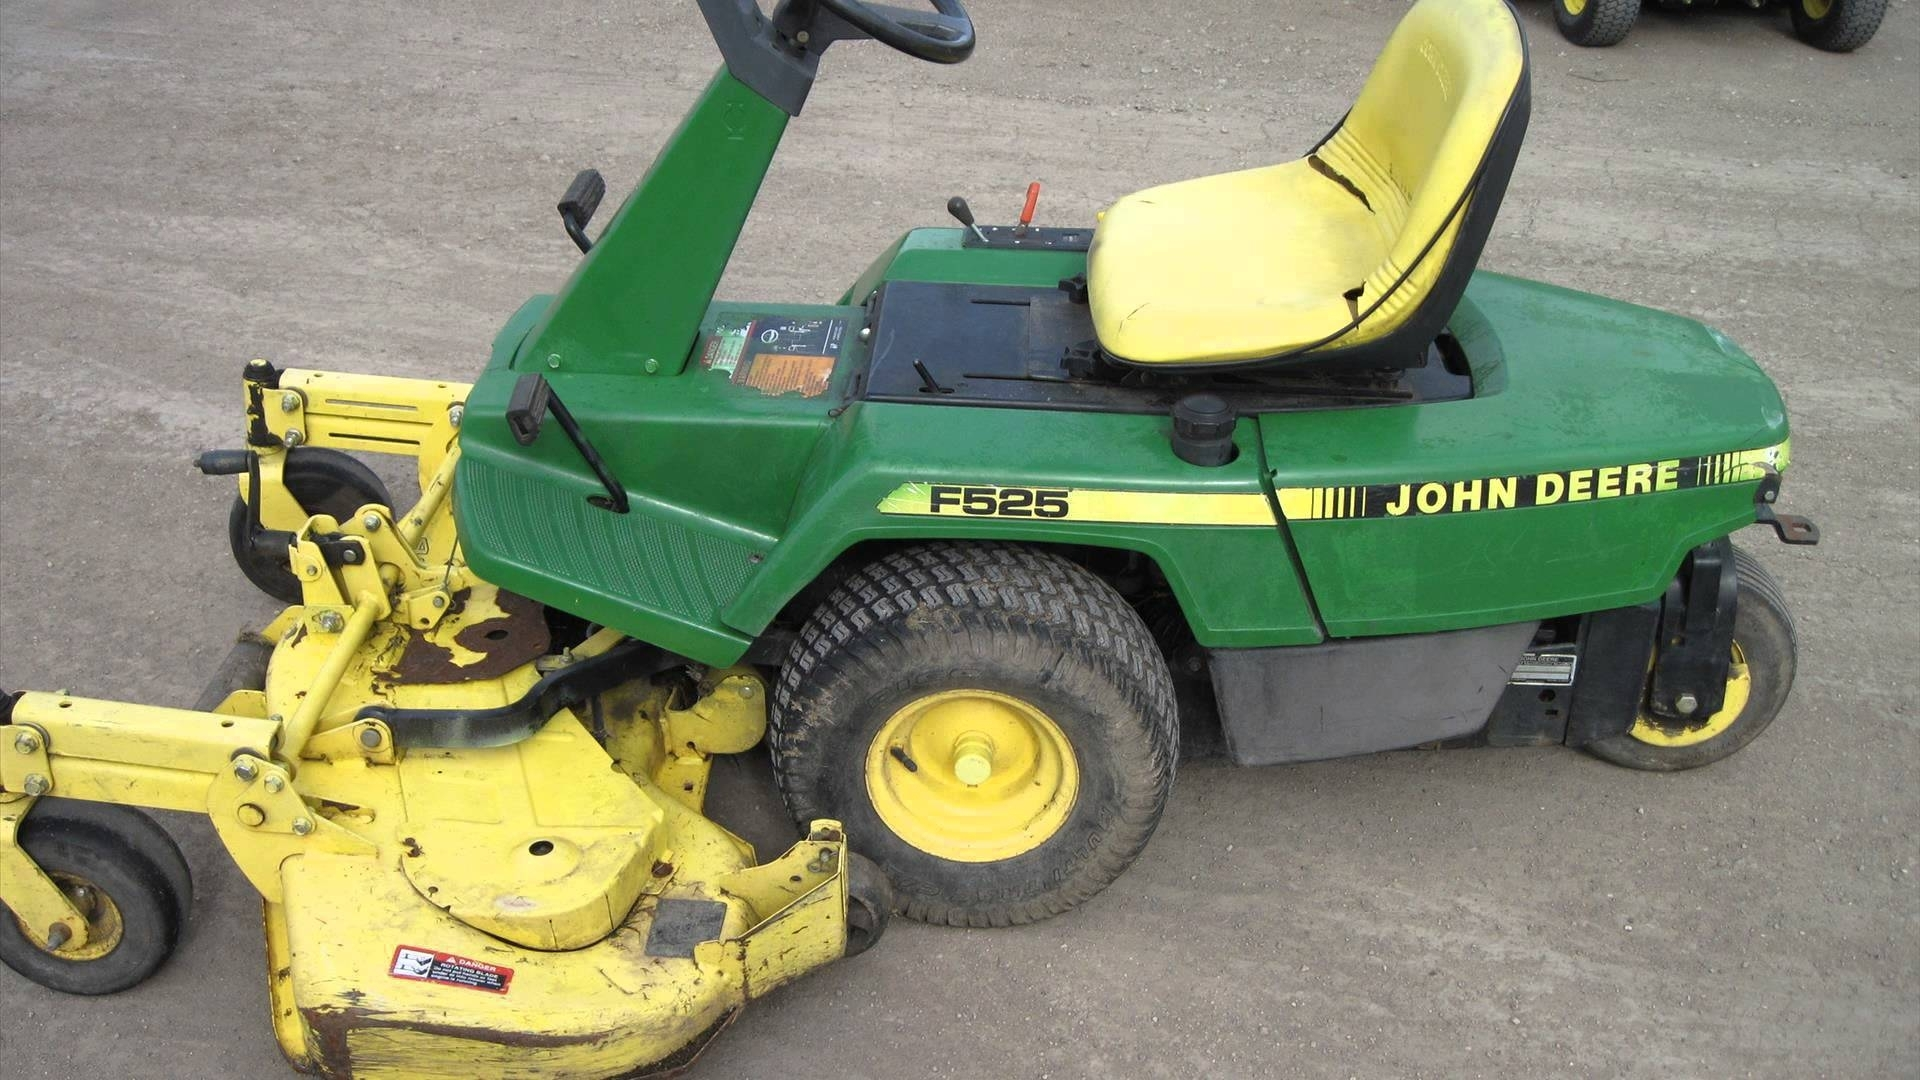 John Deere F525 Lawn Mower - Youtube for John Deere Lawn Mower Parts Diagram